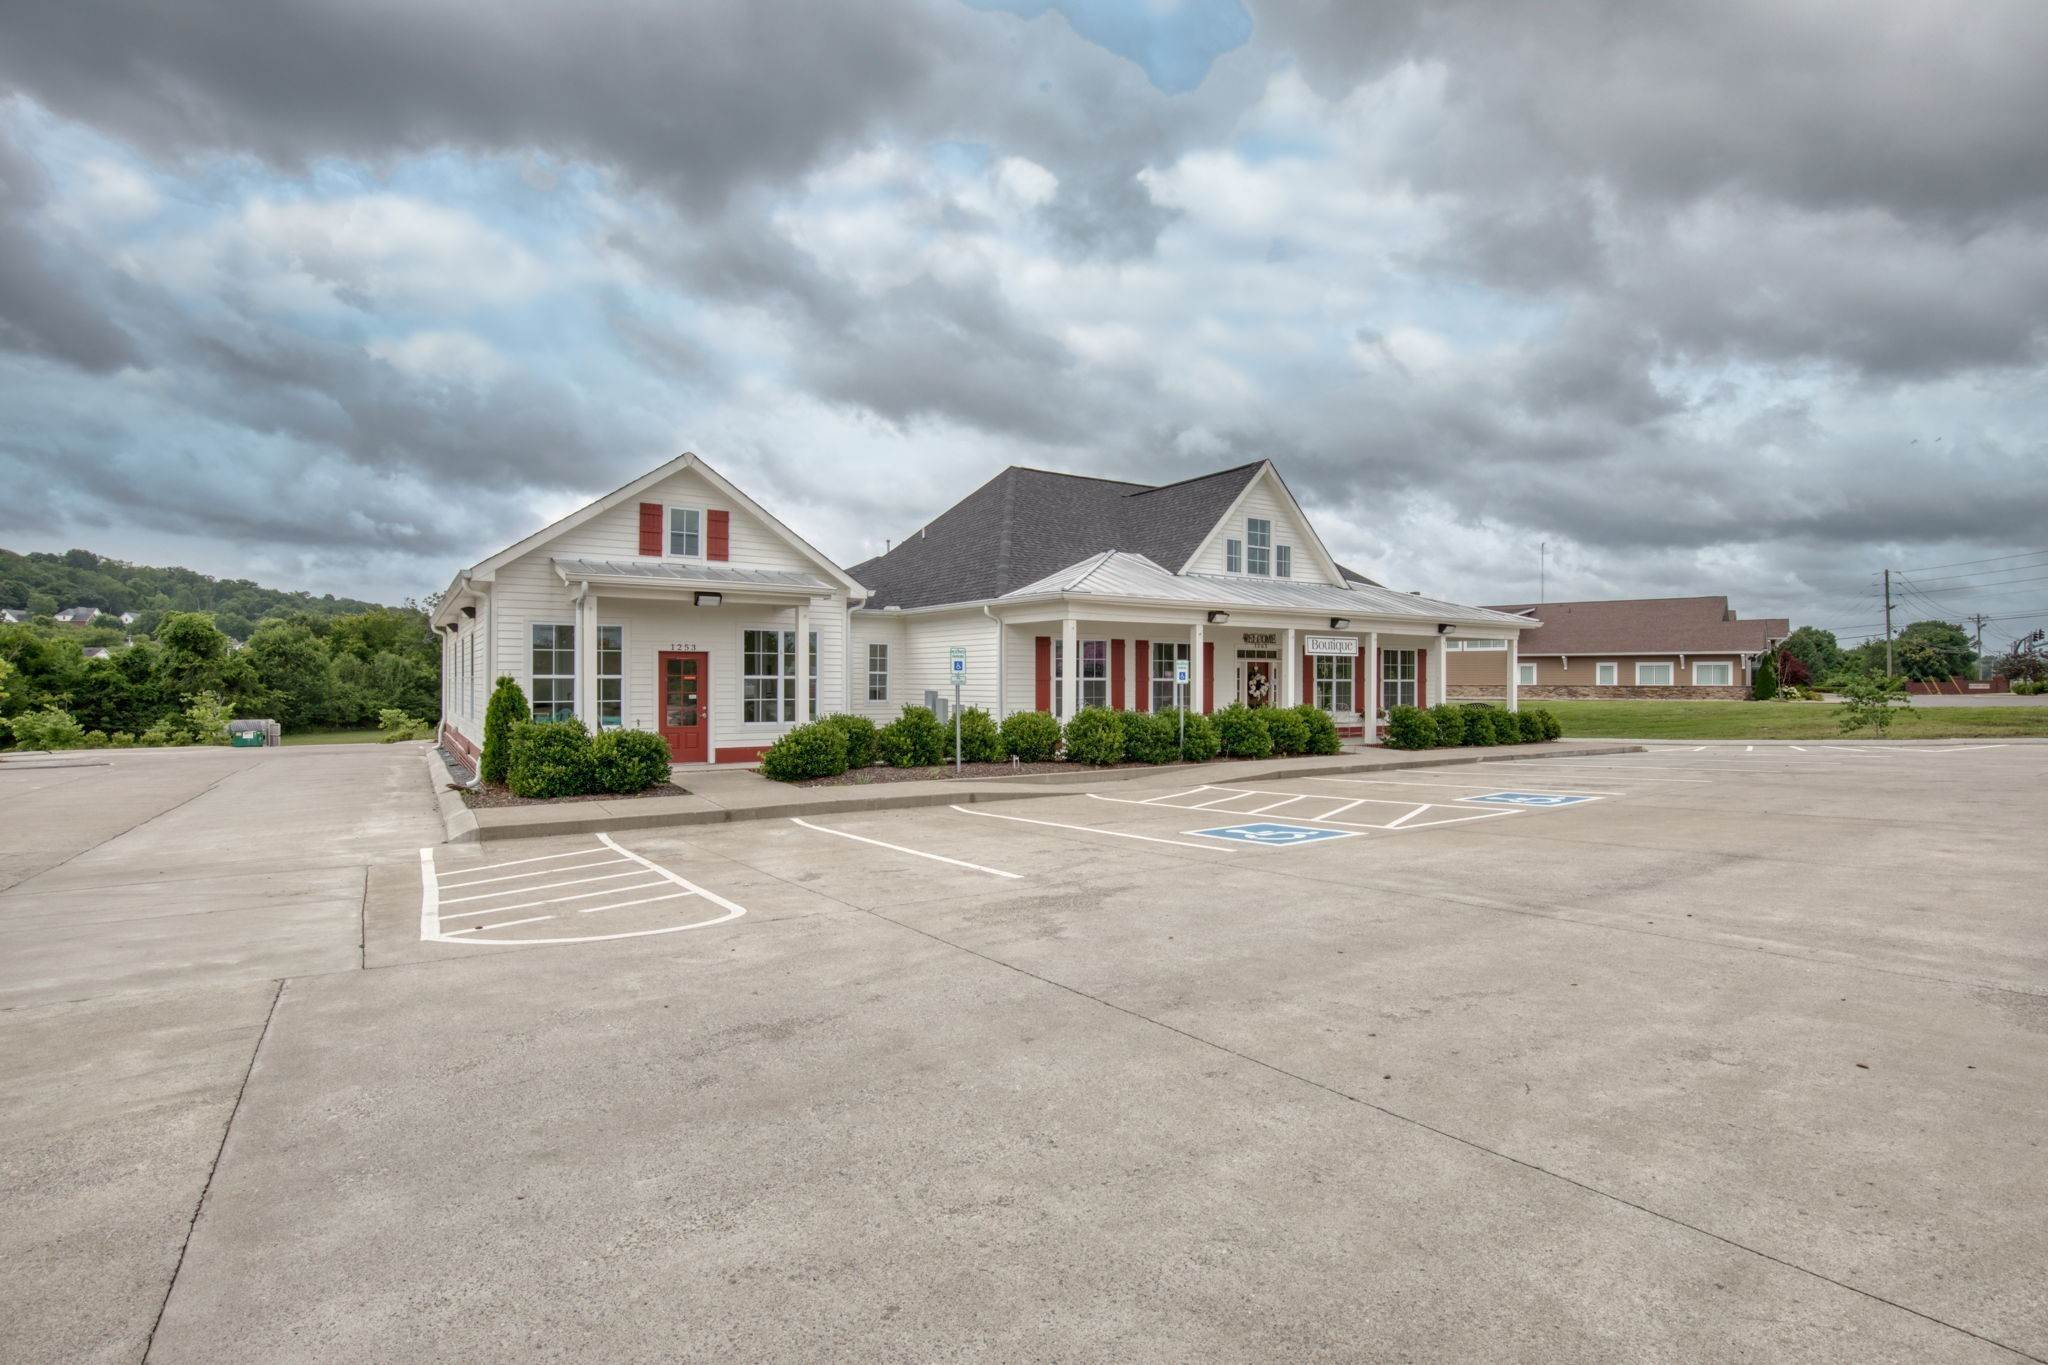 Commercial for Sale at 1265 Rock Springs Road Smyrna, Tennessee 37167 United States